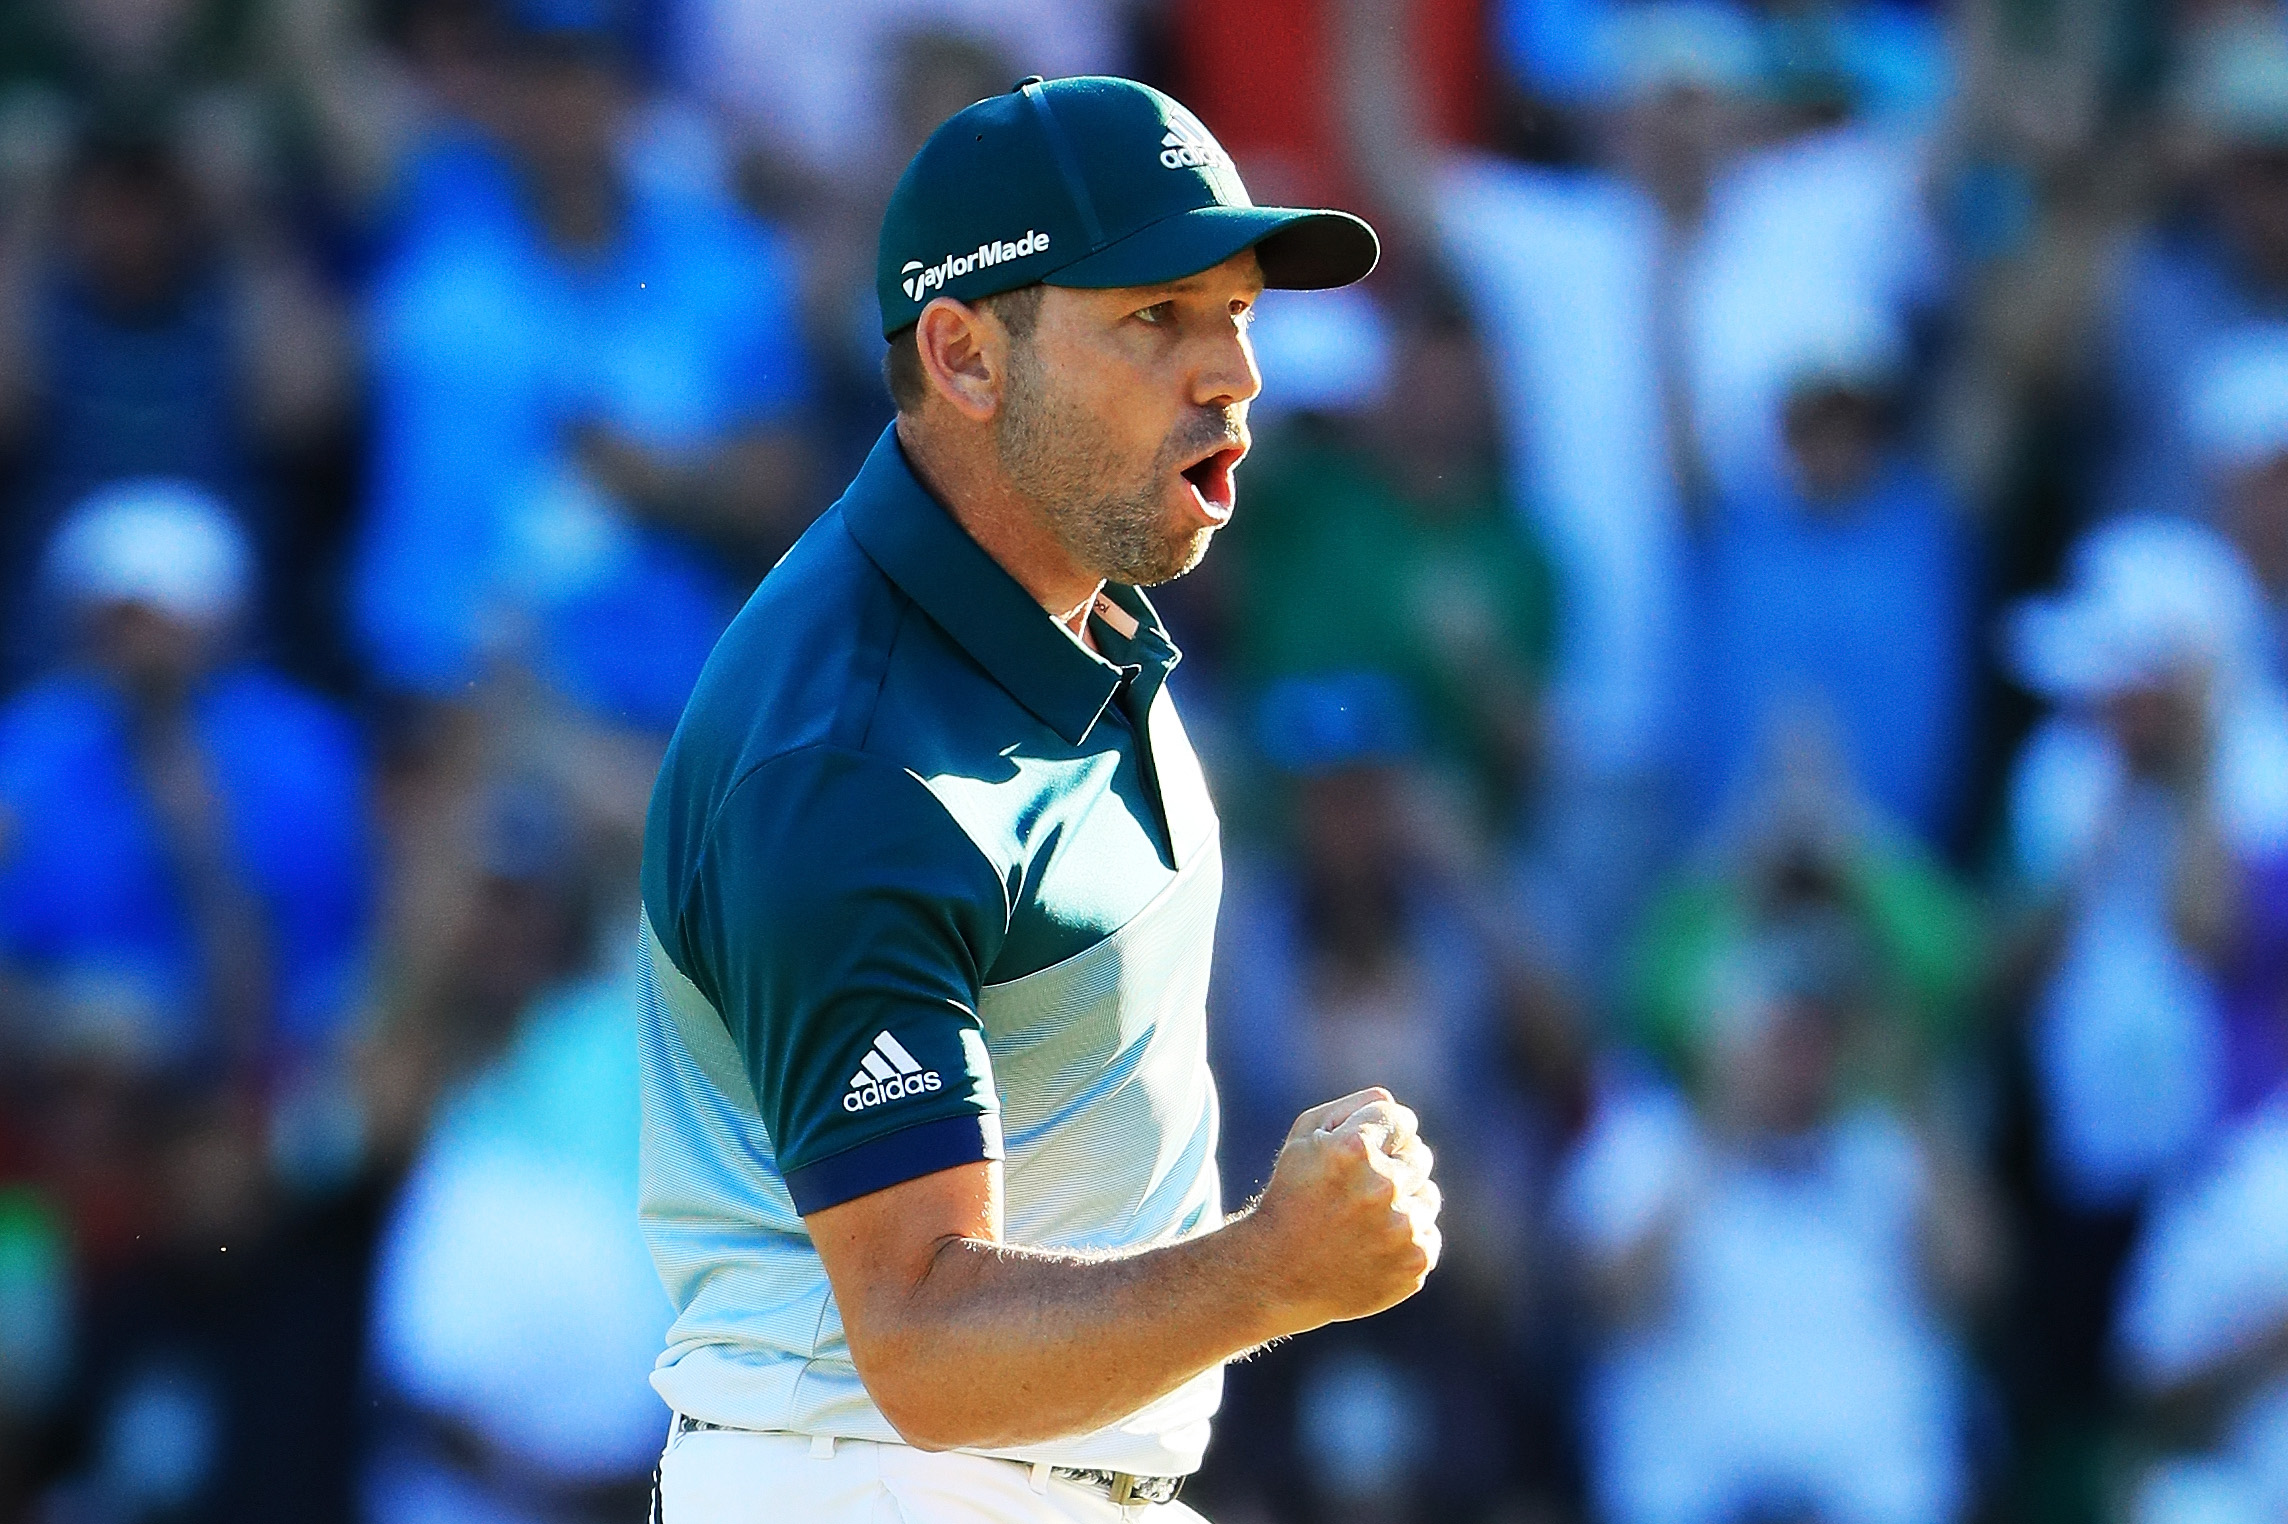 Sergio Garcia celebrates his eagle putt on the 15th hole on Sunday at the Masters.